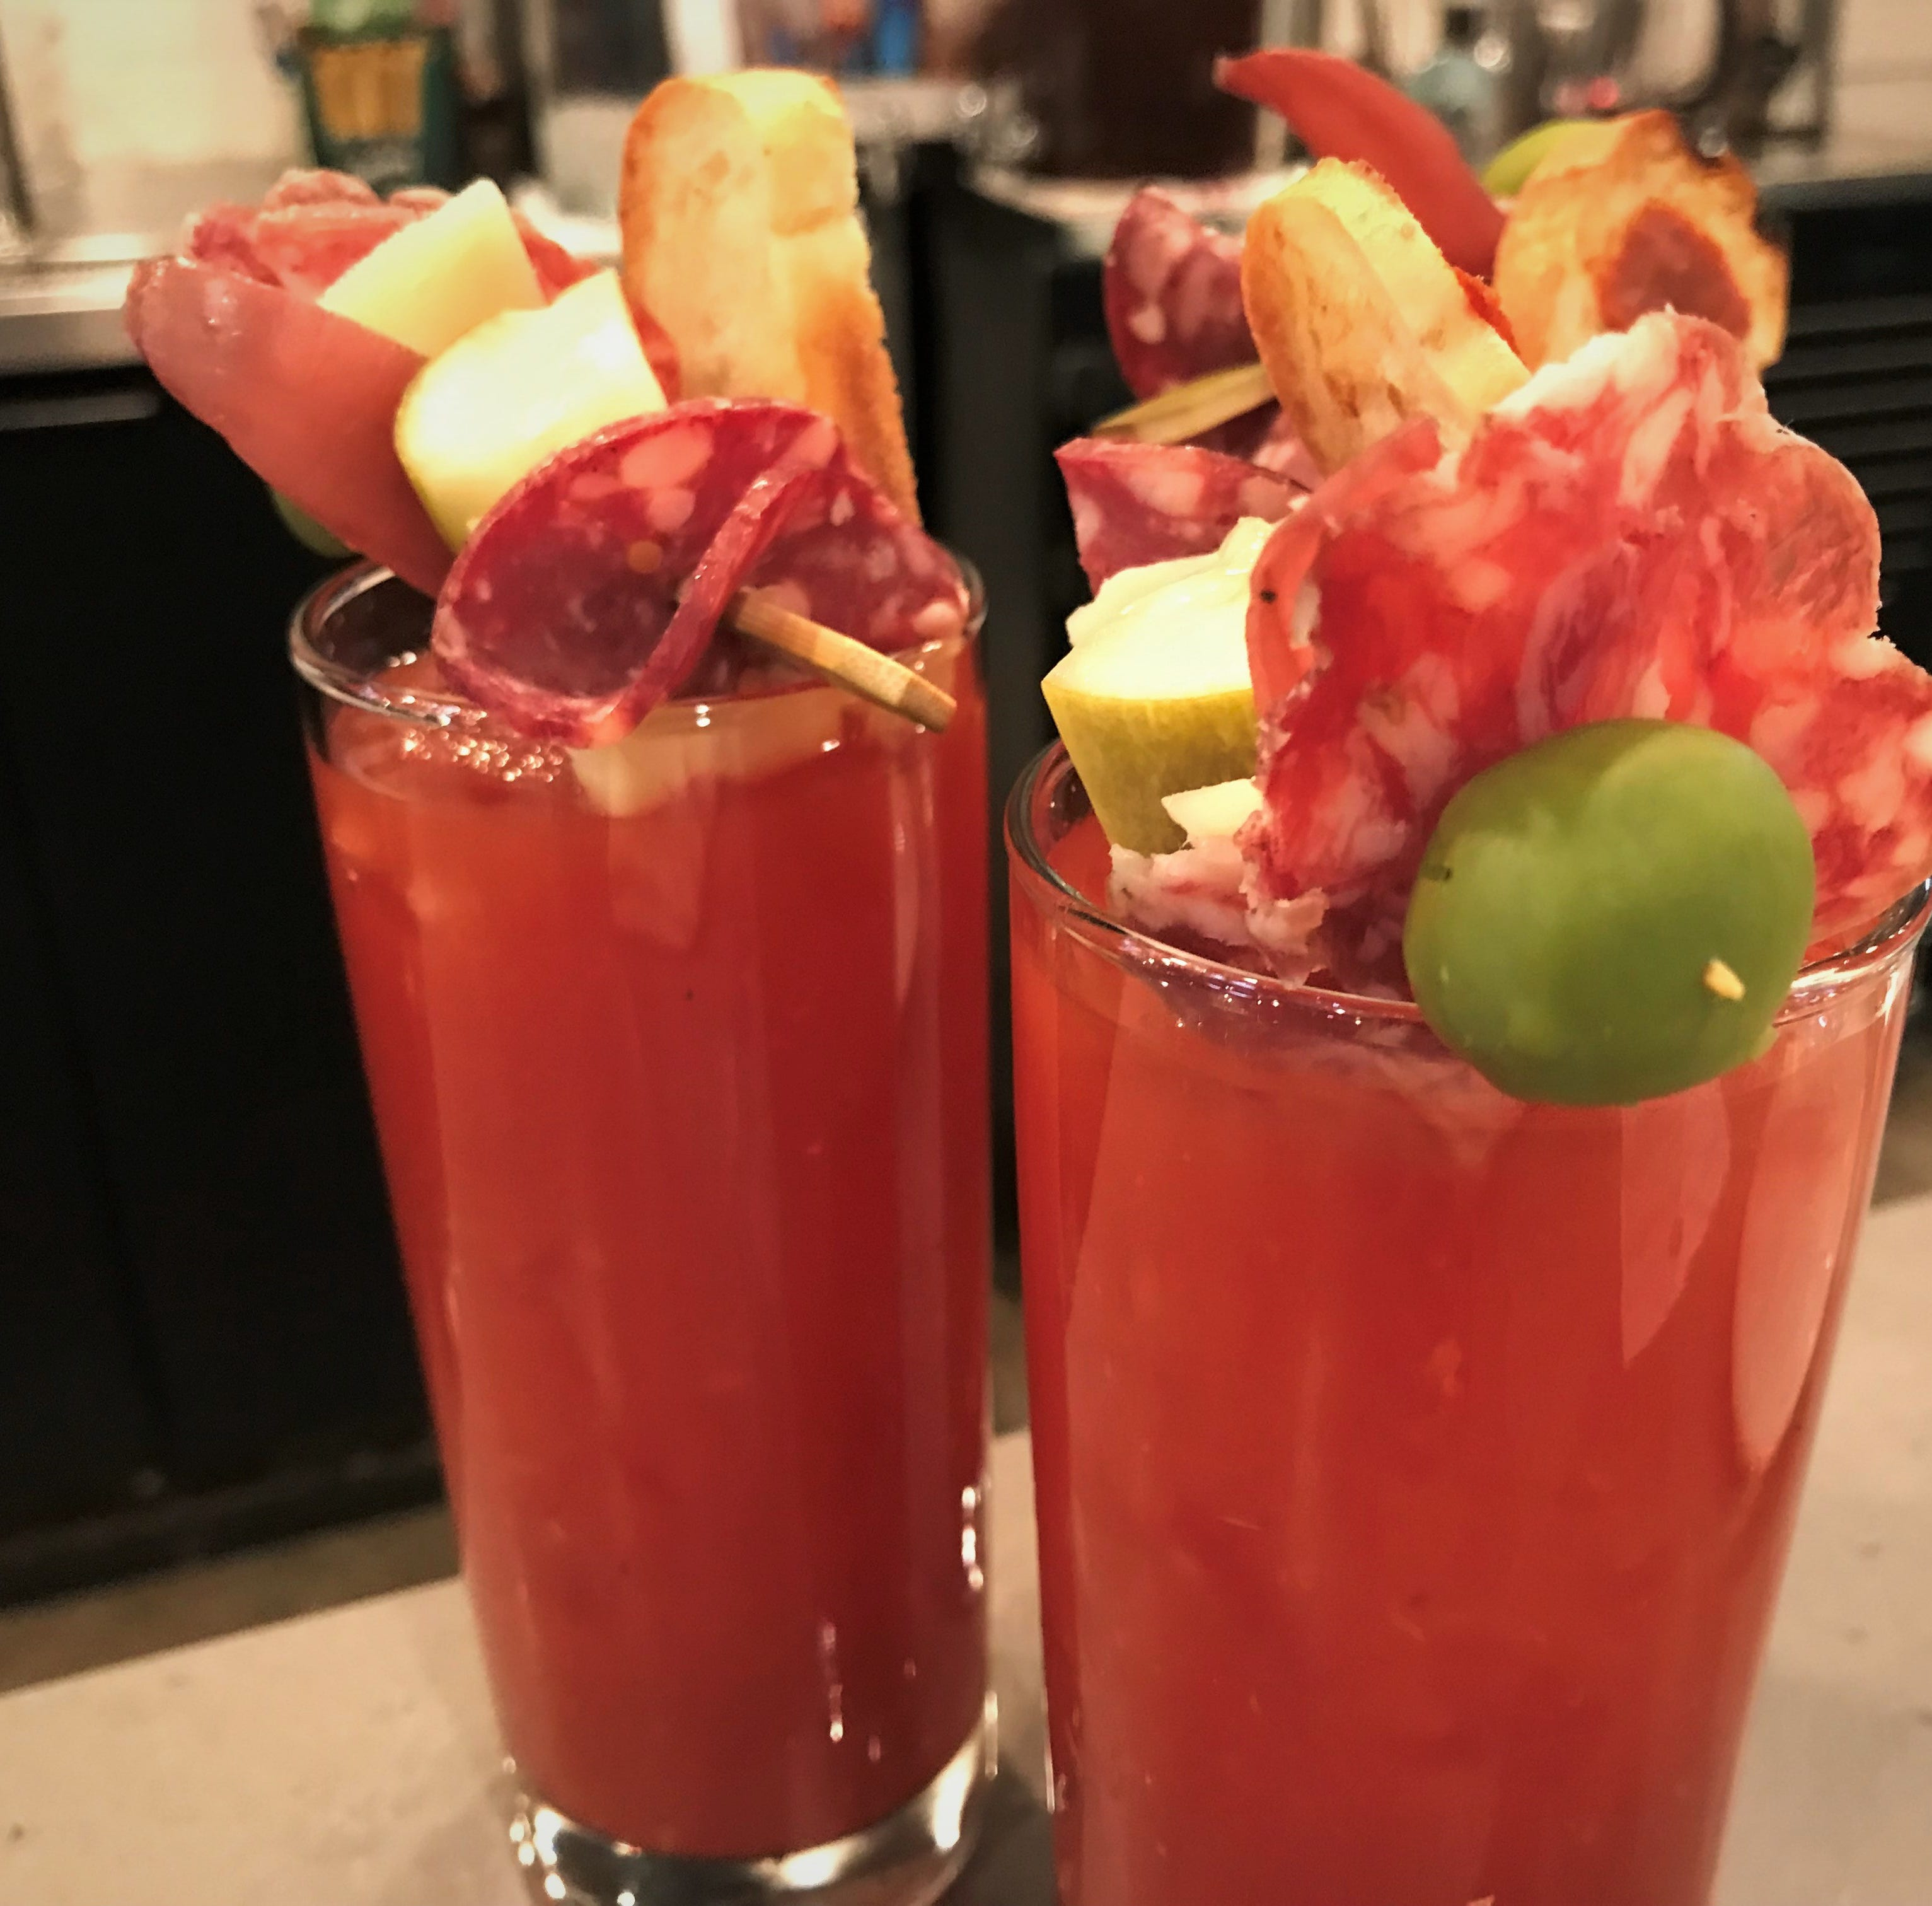 New brunch menus to try at Indianapolis restaurants right now